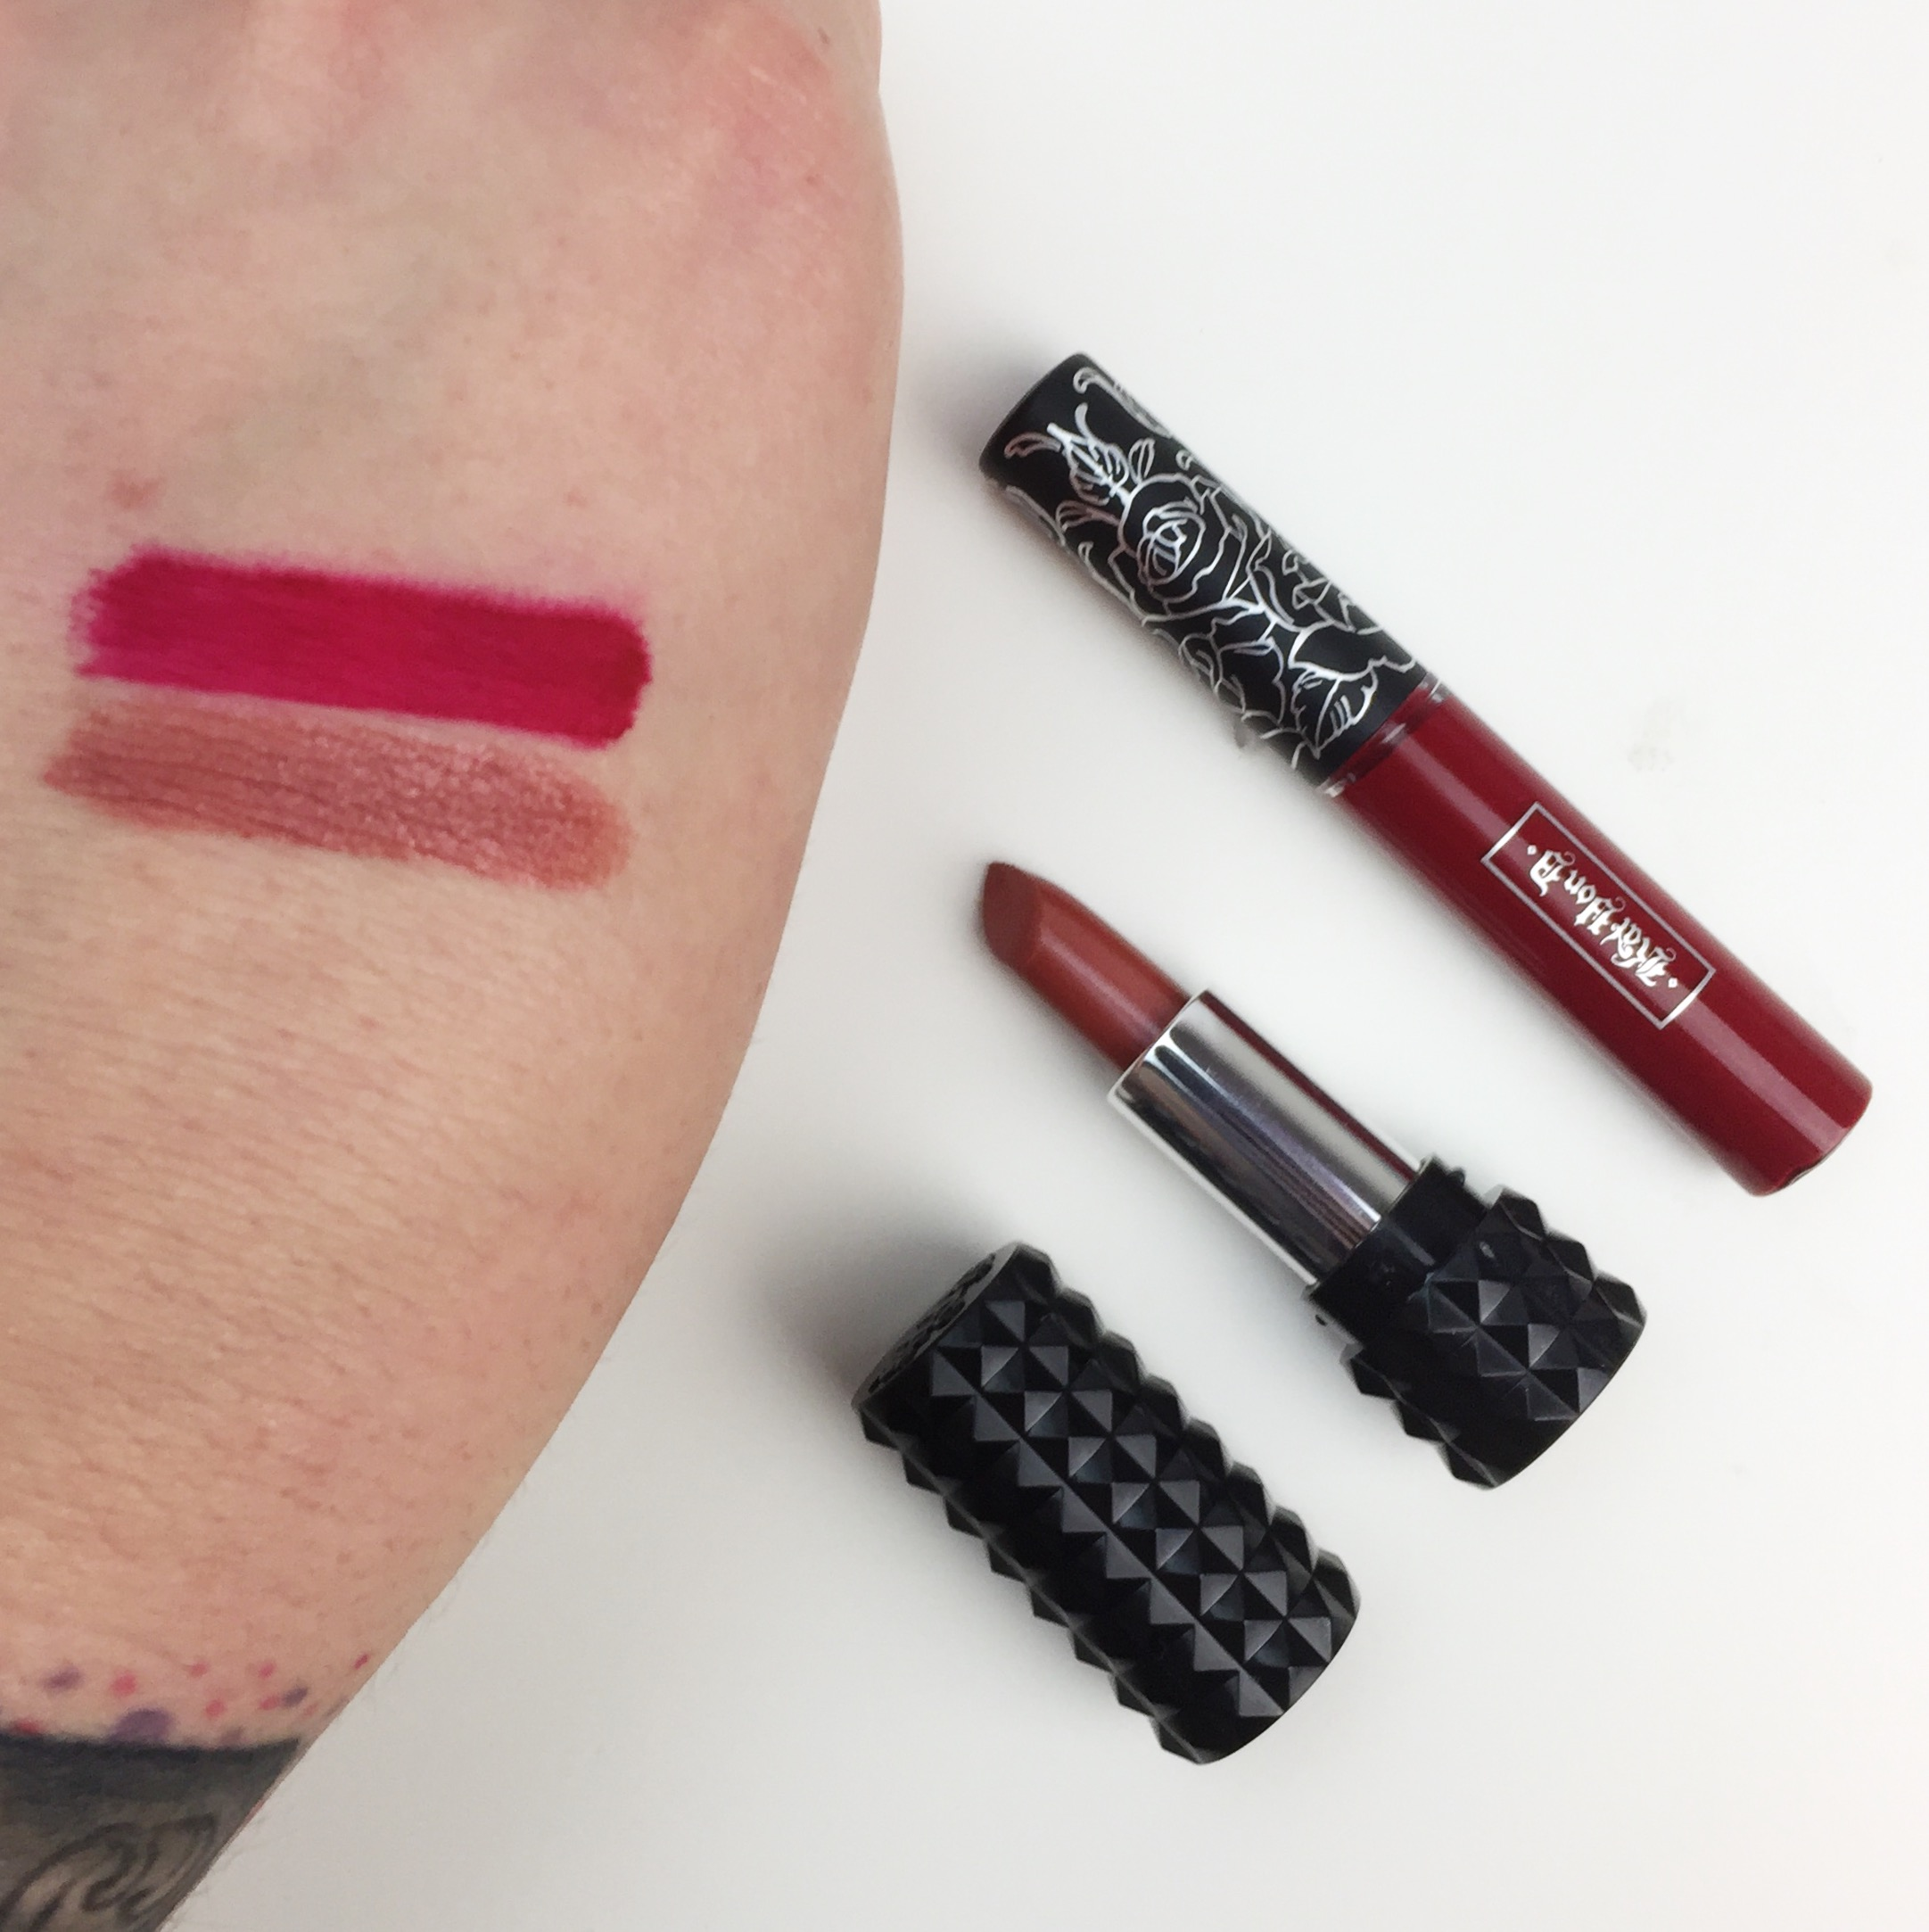 Believe The Hype: Kat Von D Better Together Collection Swatches - Artificial Light